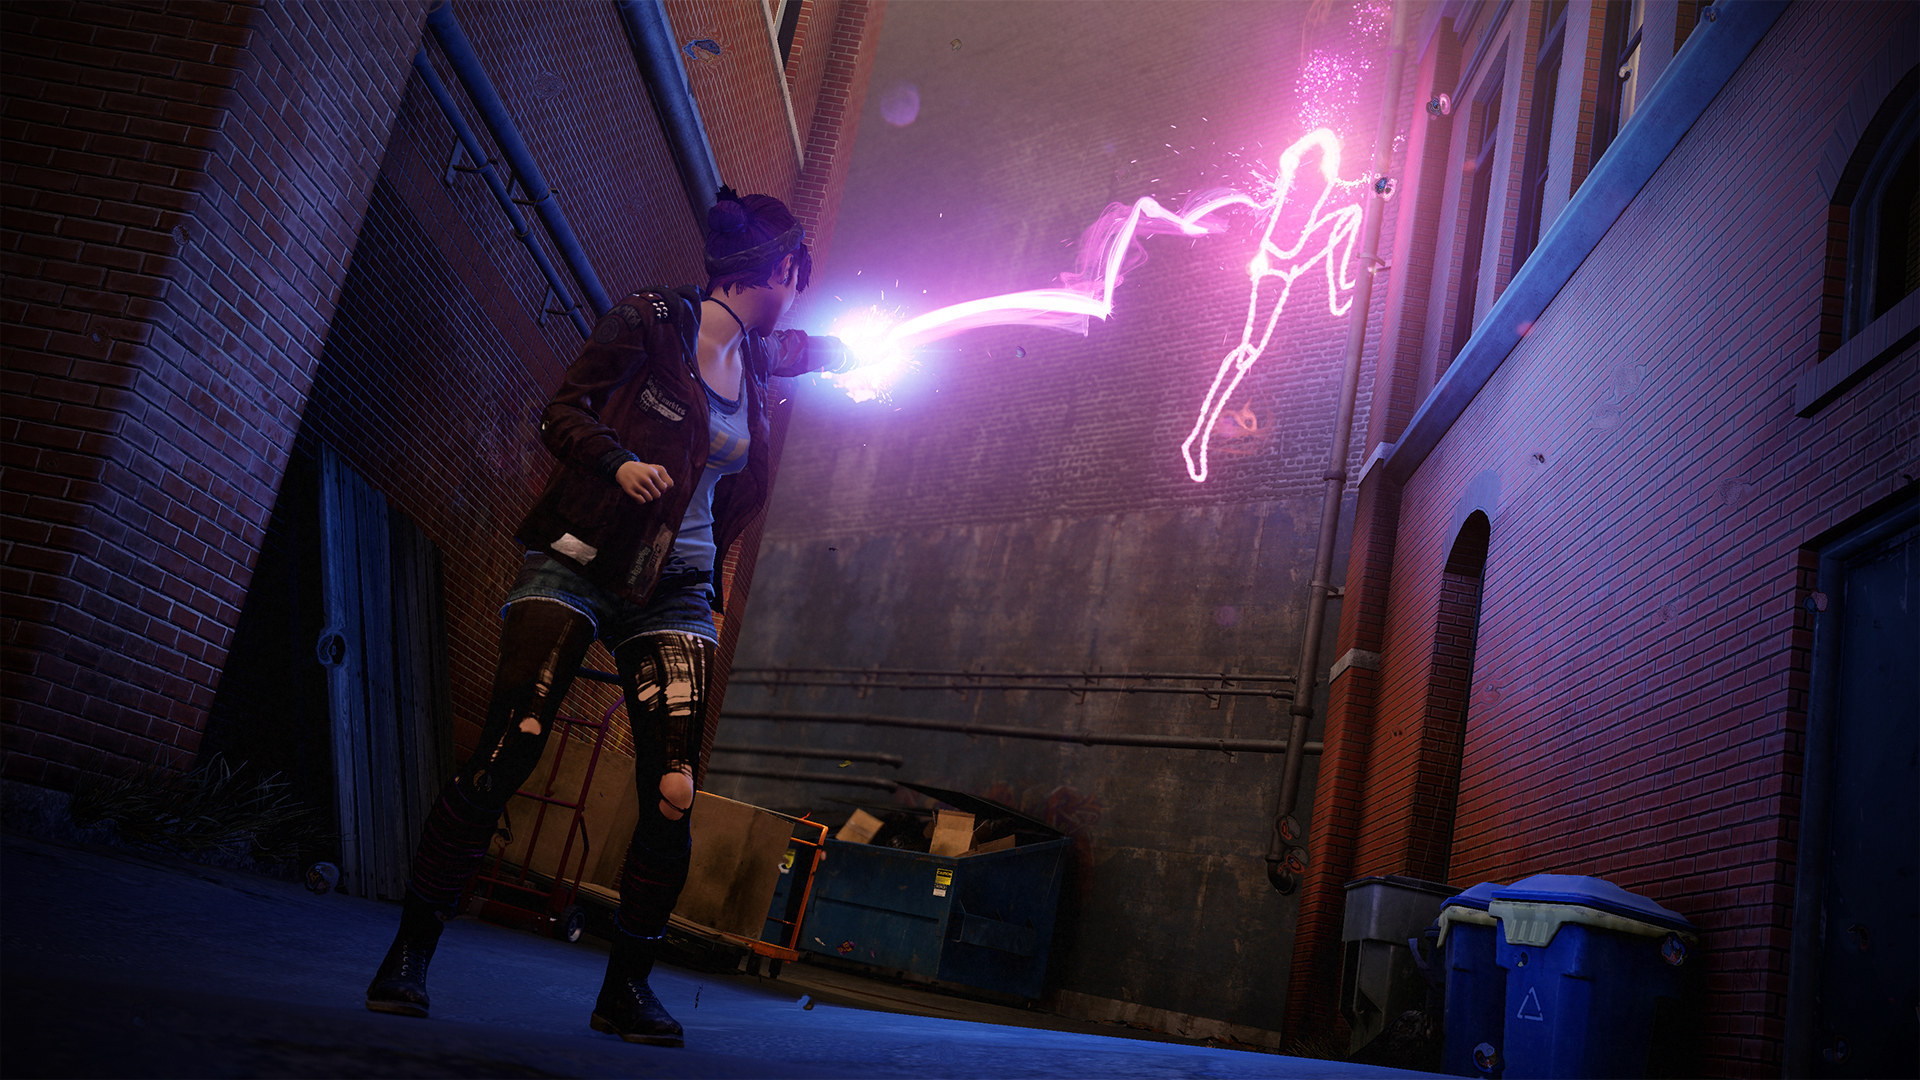 inFAMOUS_First_Light-Fetch_wall_writing_neon_442.jpg - inFamous: Second Son